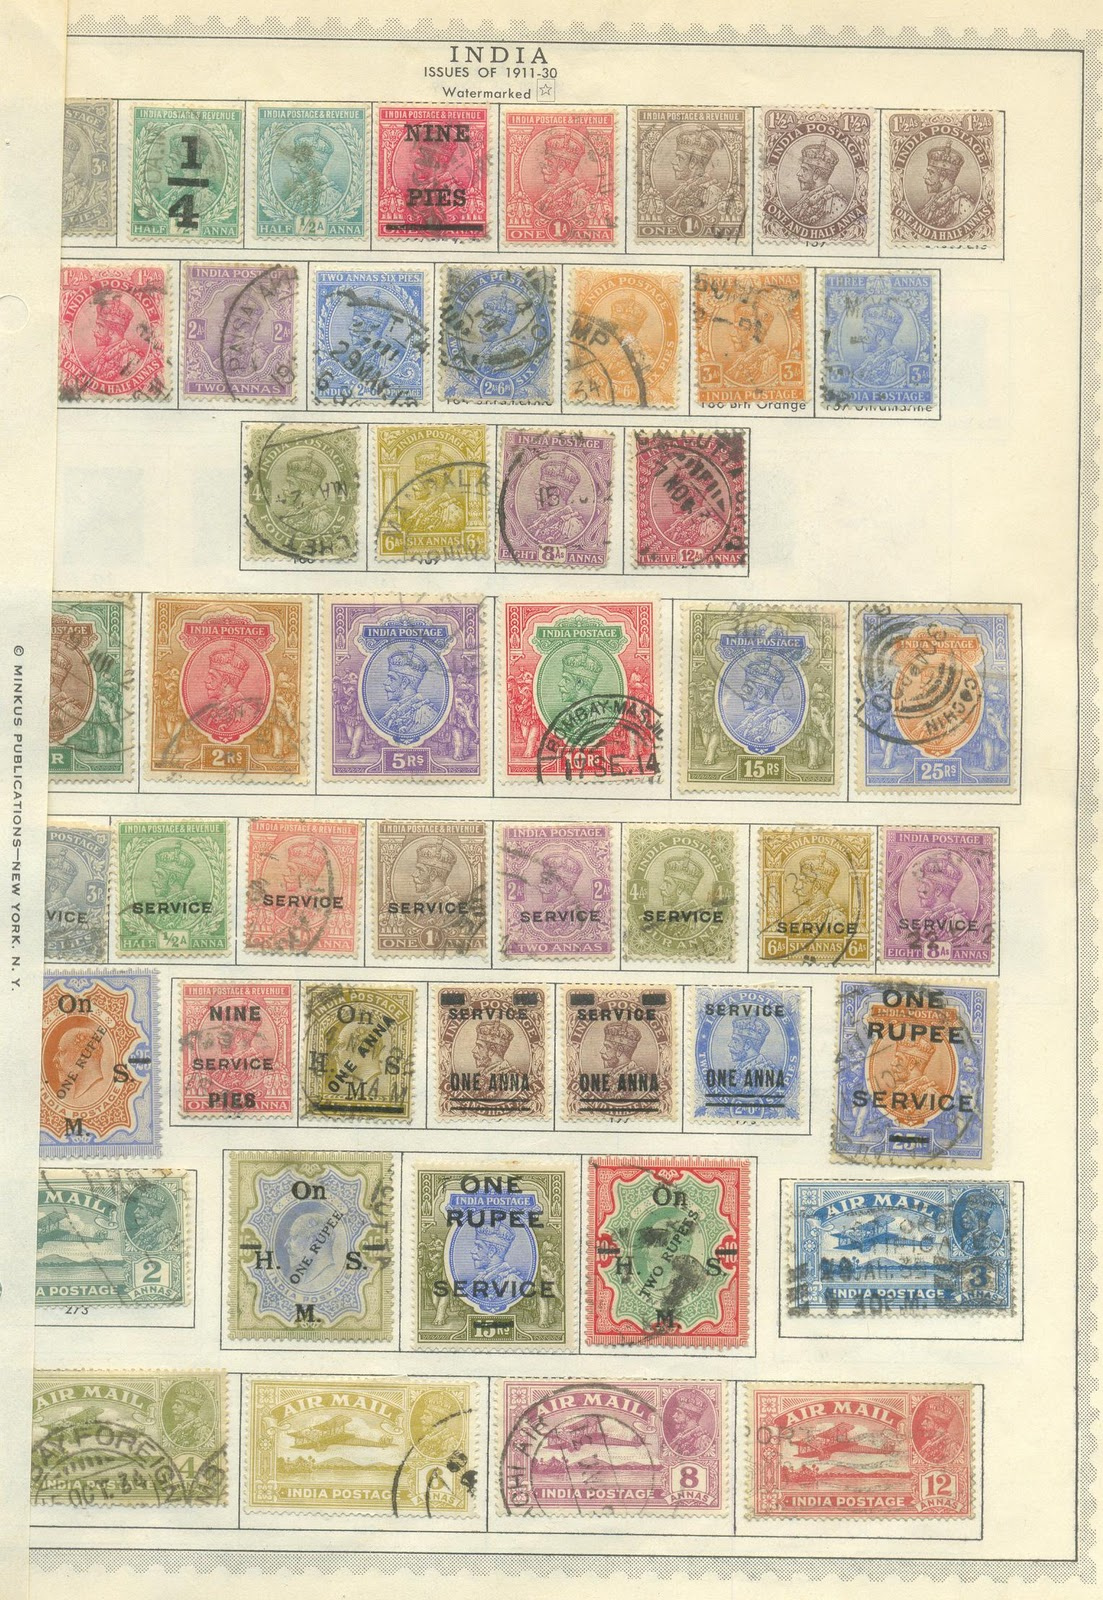 india stamps details india stamps pre independence